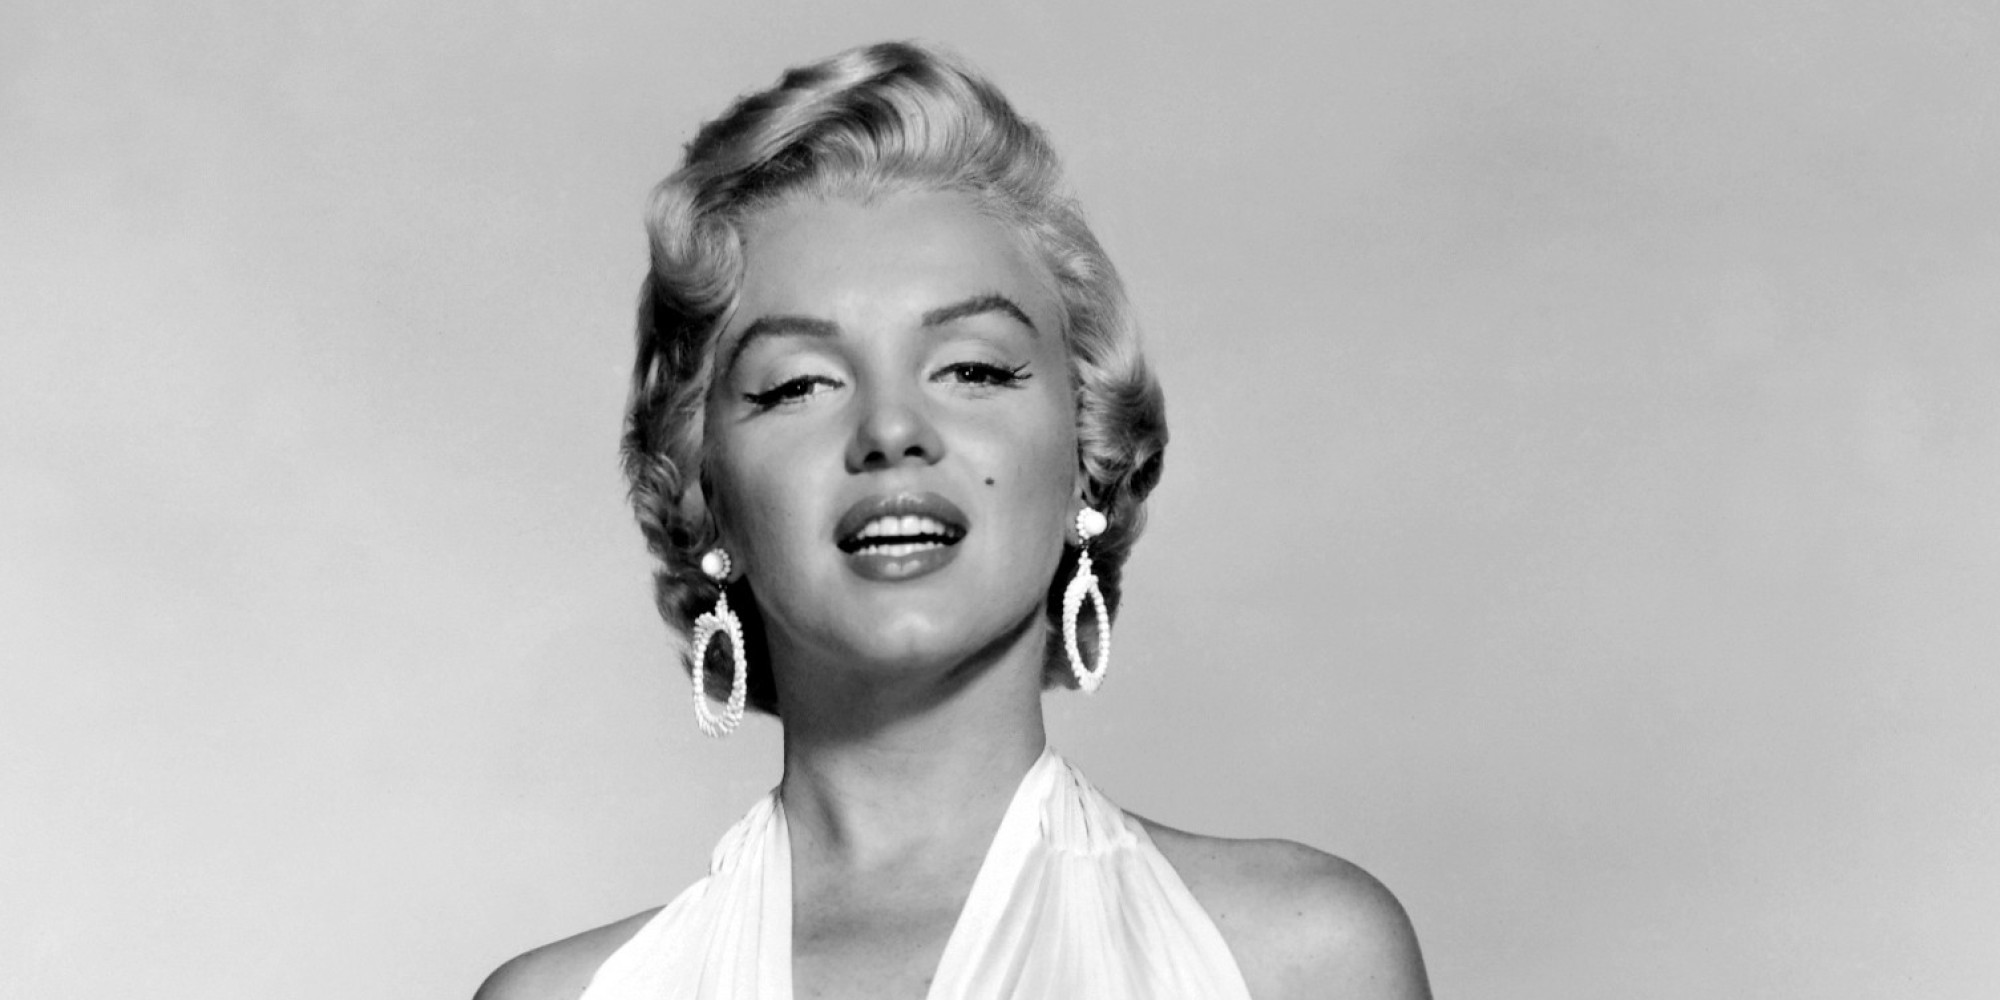 marilyn monroe wallpapers, pictures, images